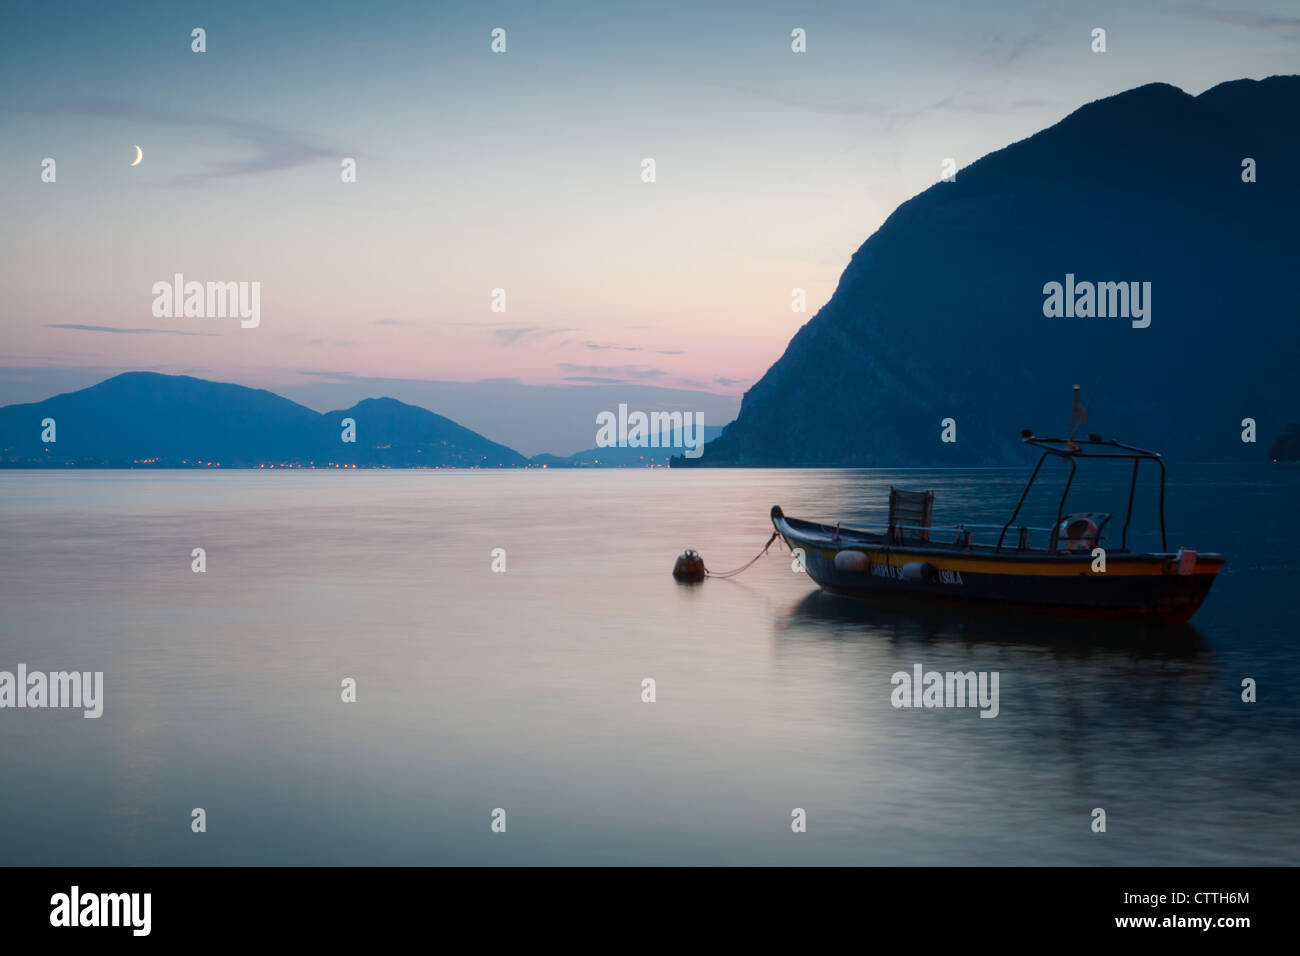 Lake Iseo from Peschiera, Monte Isola, Italy, at night with mountains, crescent moon, distant lights and boat. - Stock Image